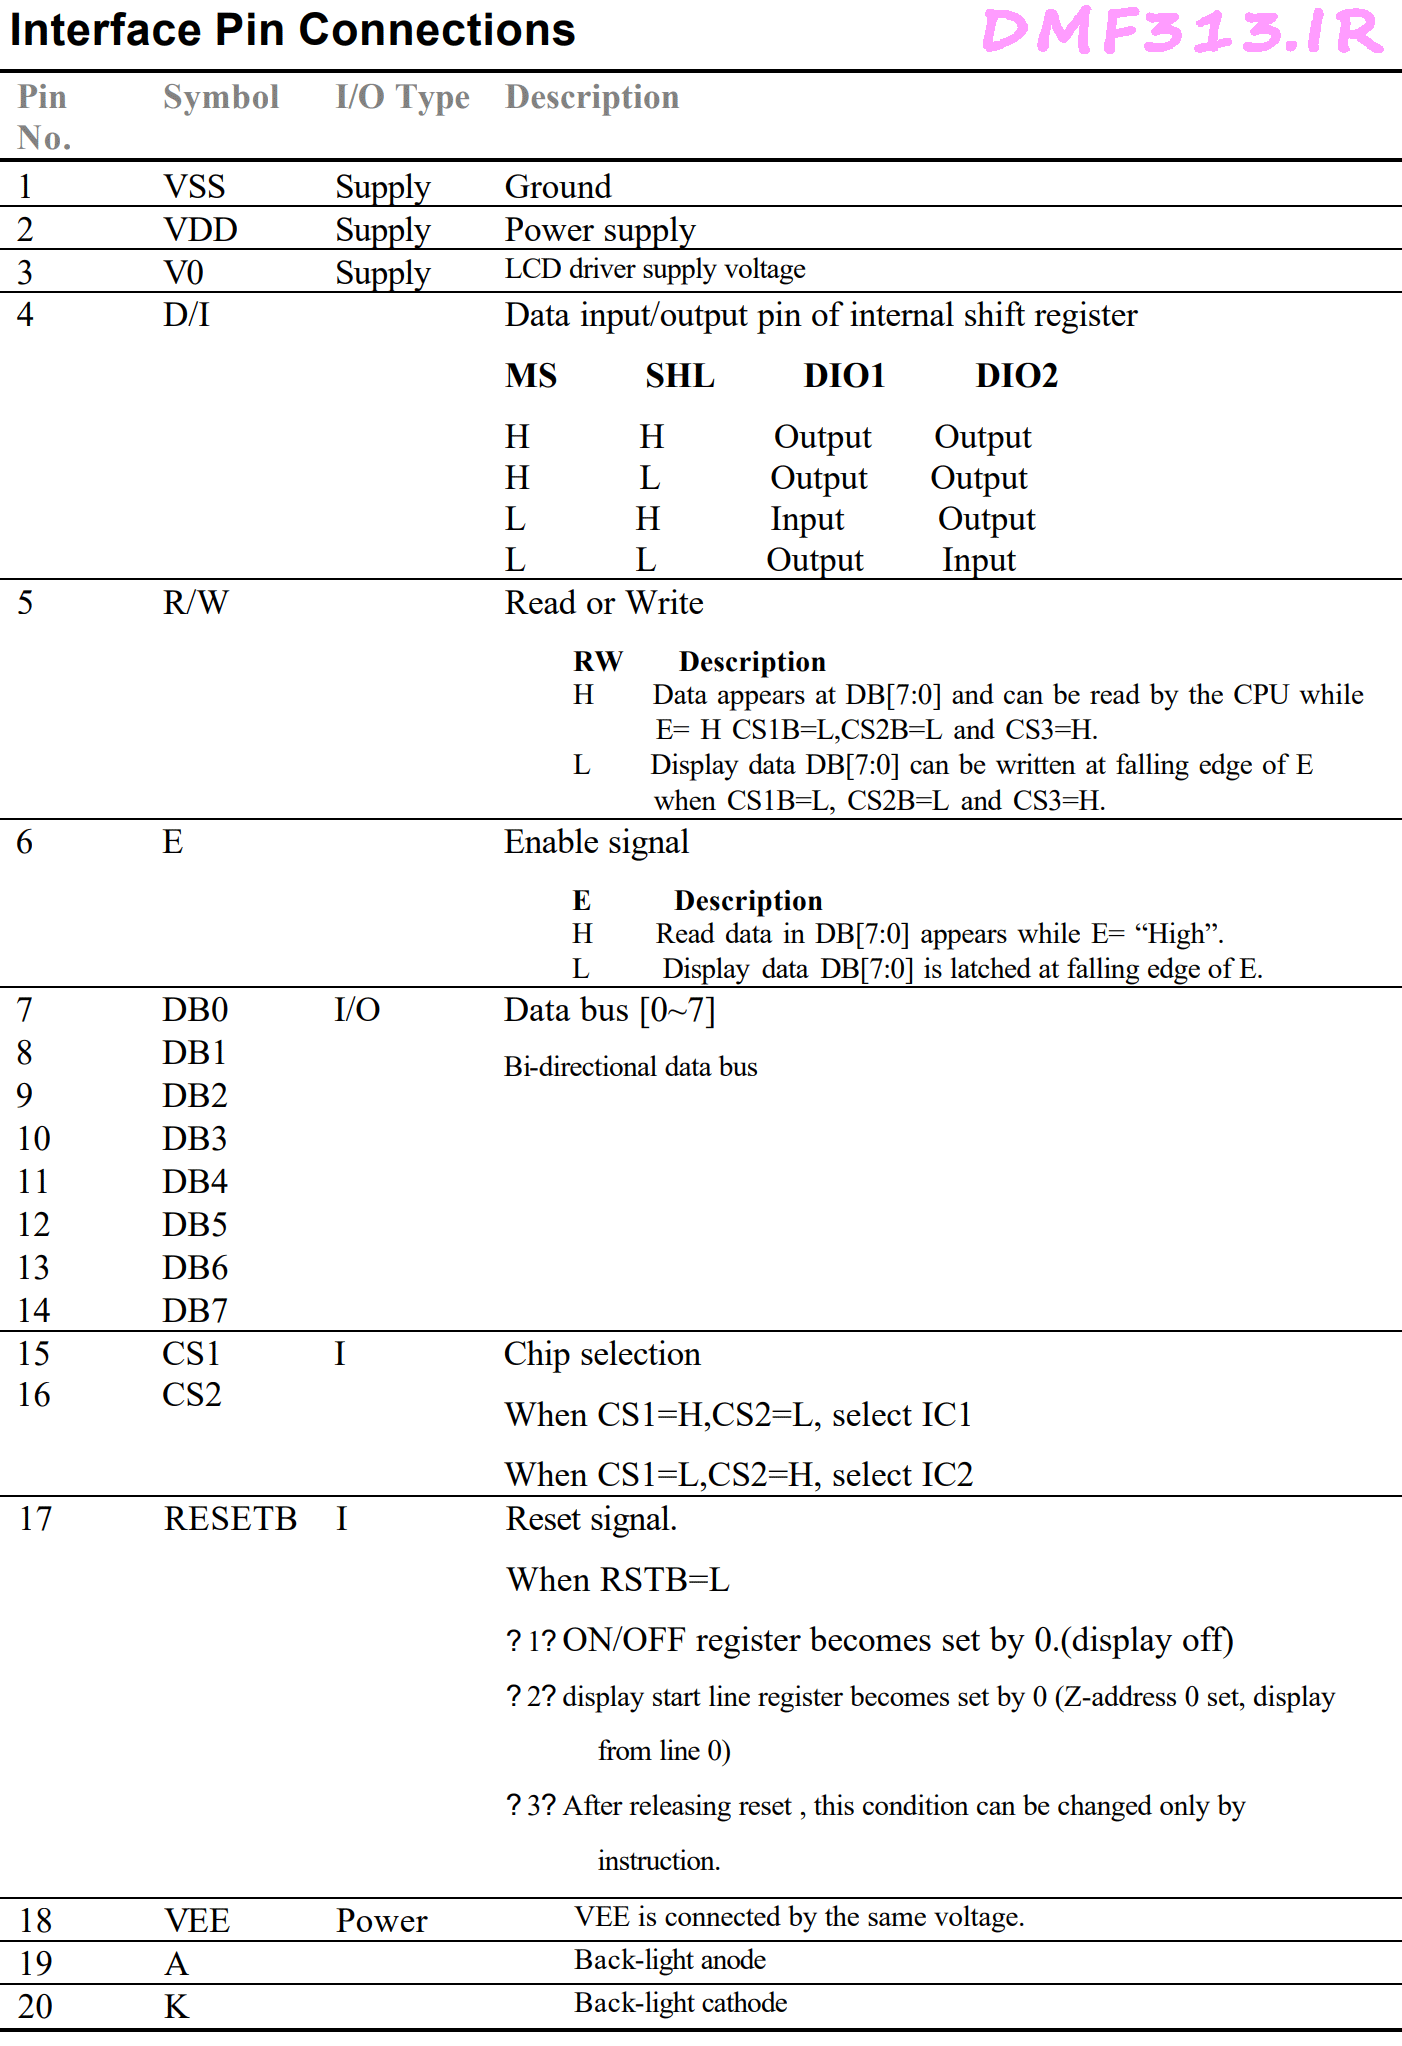 ks0108 Interface Pin Connections